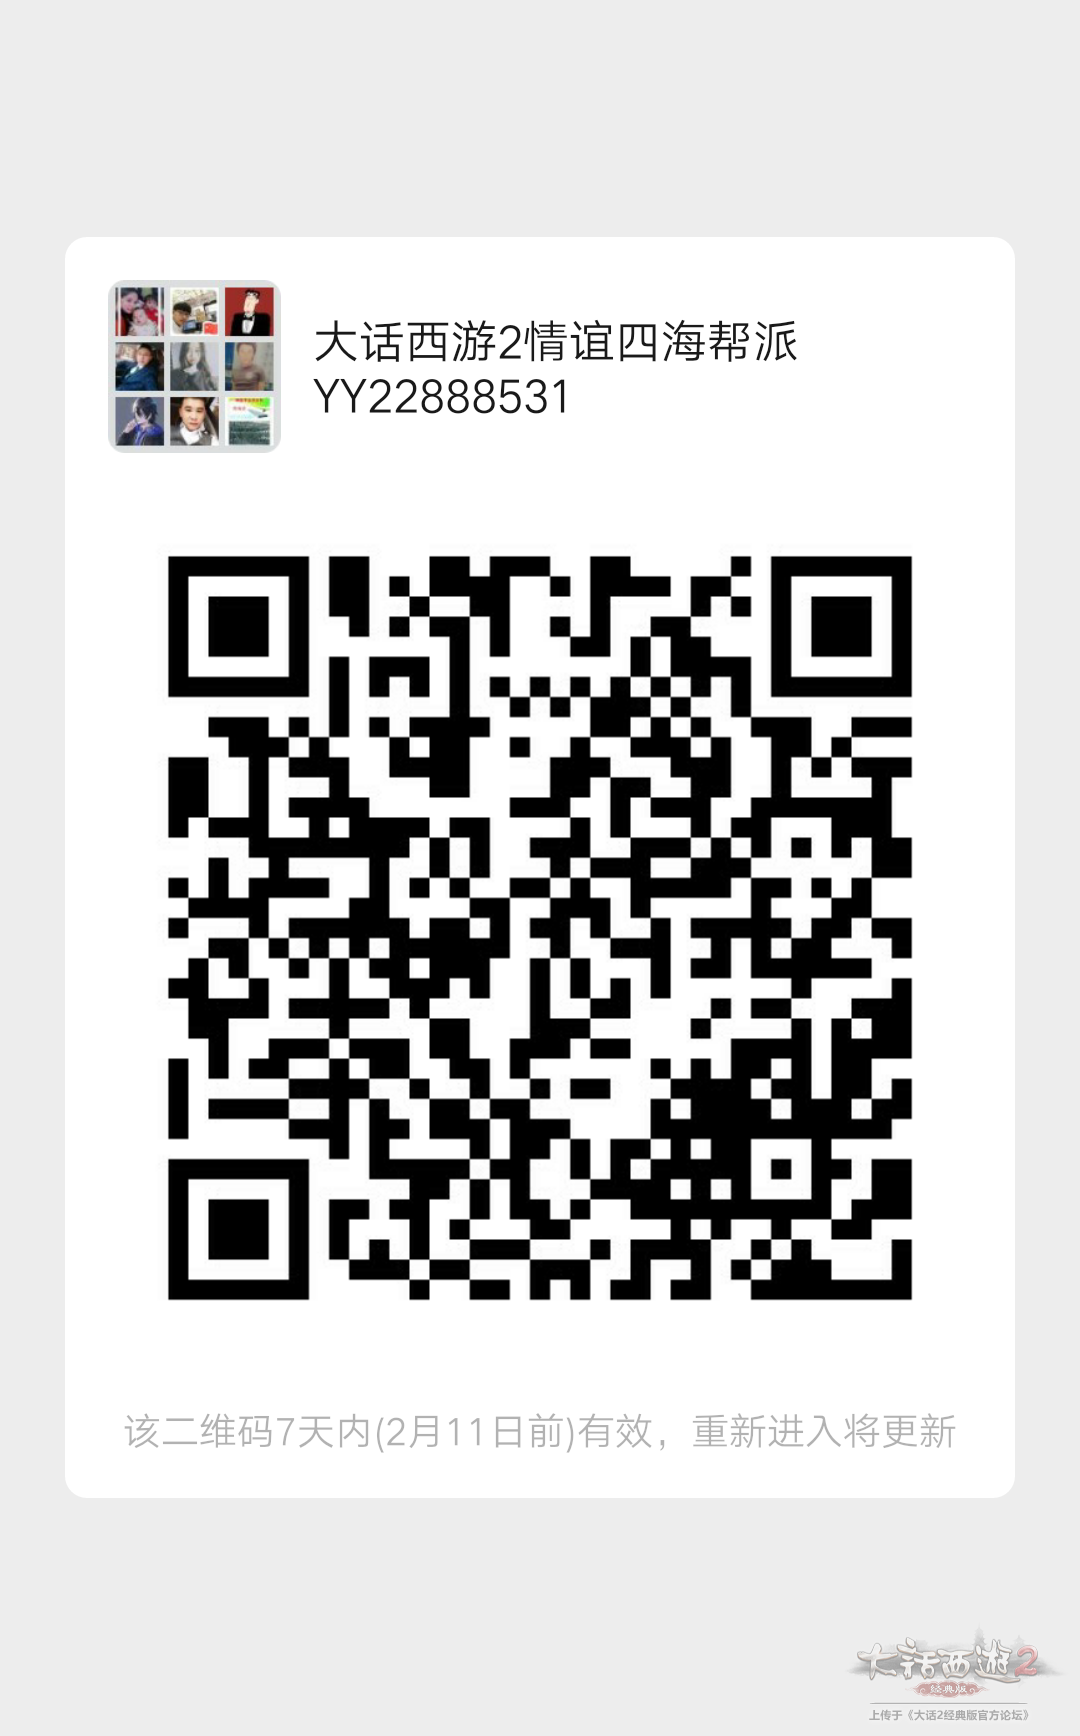 mmqrcode1580799559200.png